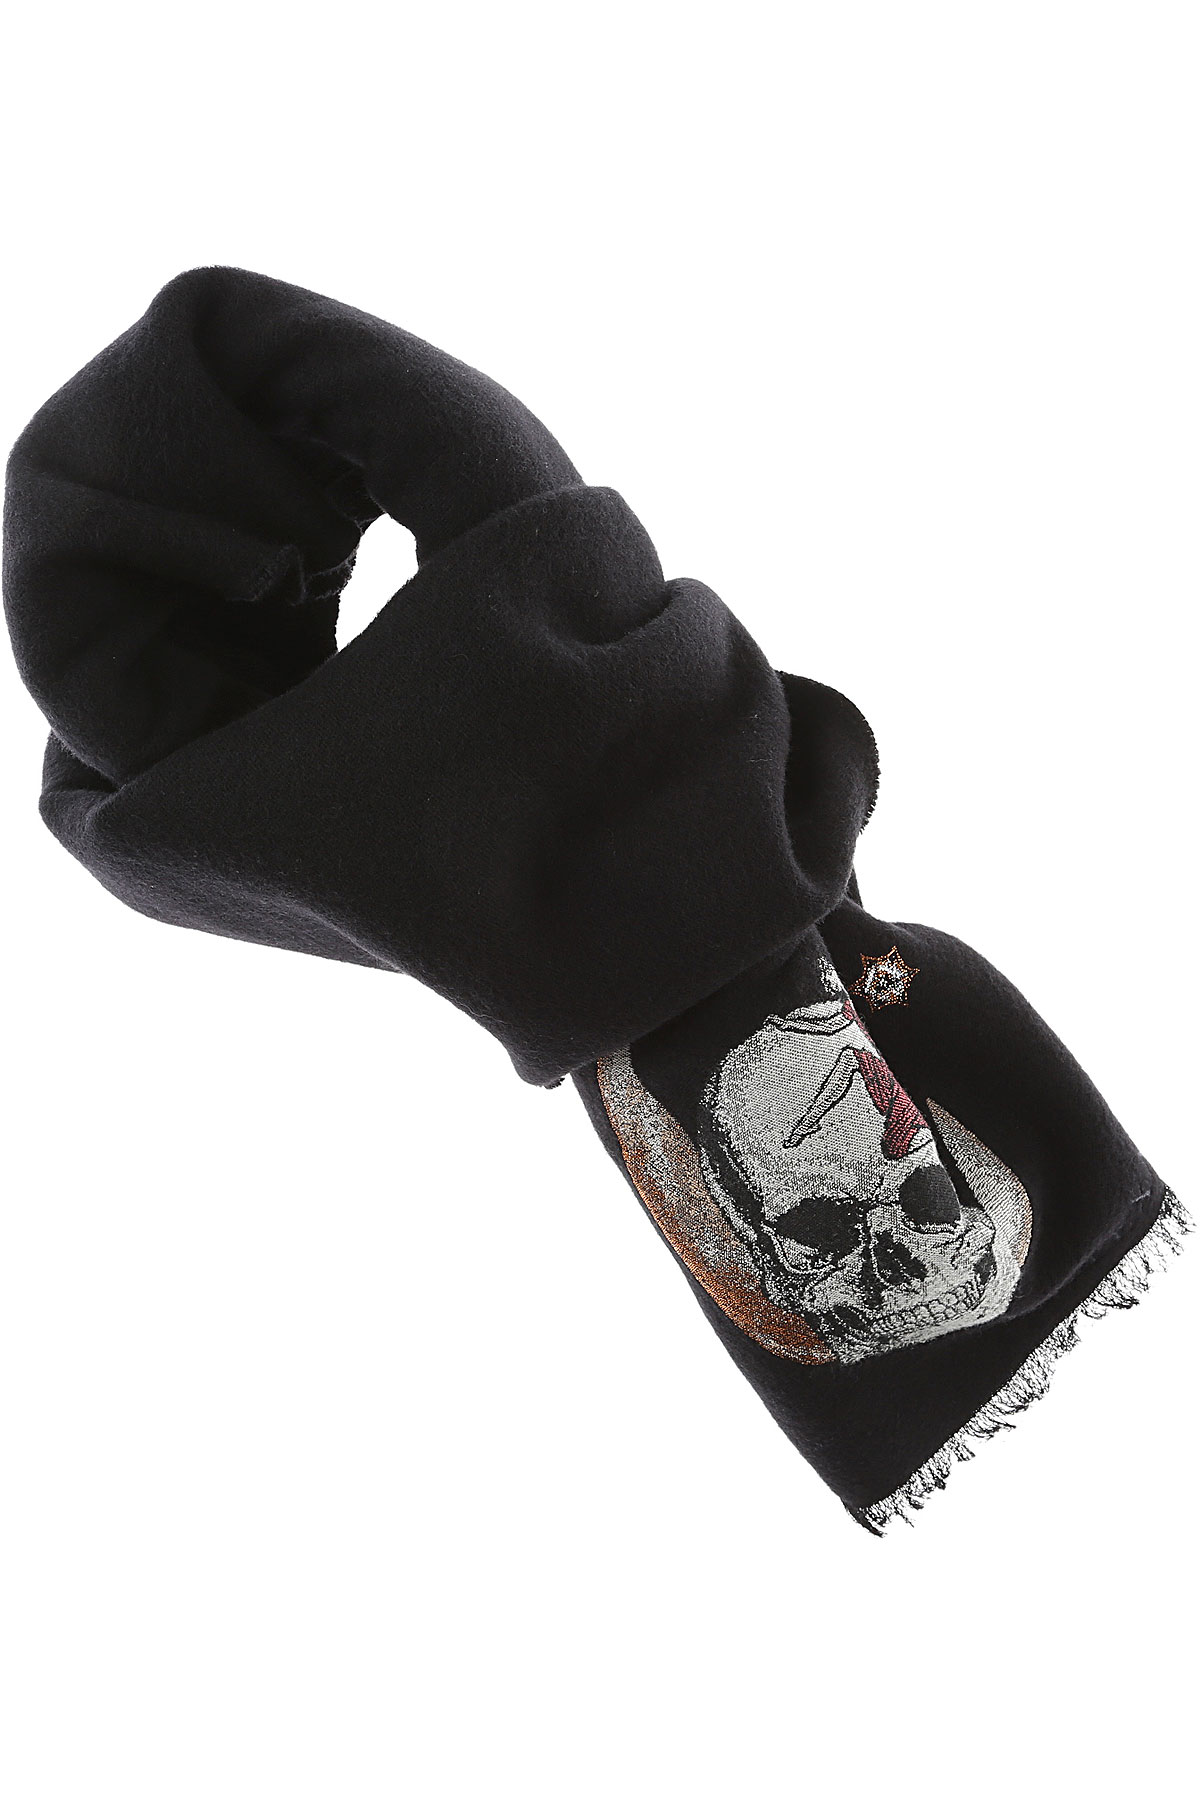 Image of Alexander McQueen Scarf for Women, Black, Wool, 2017